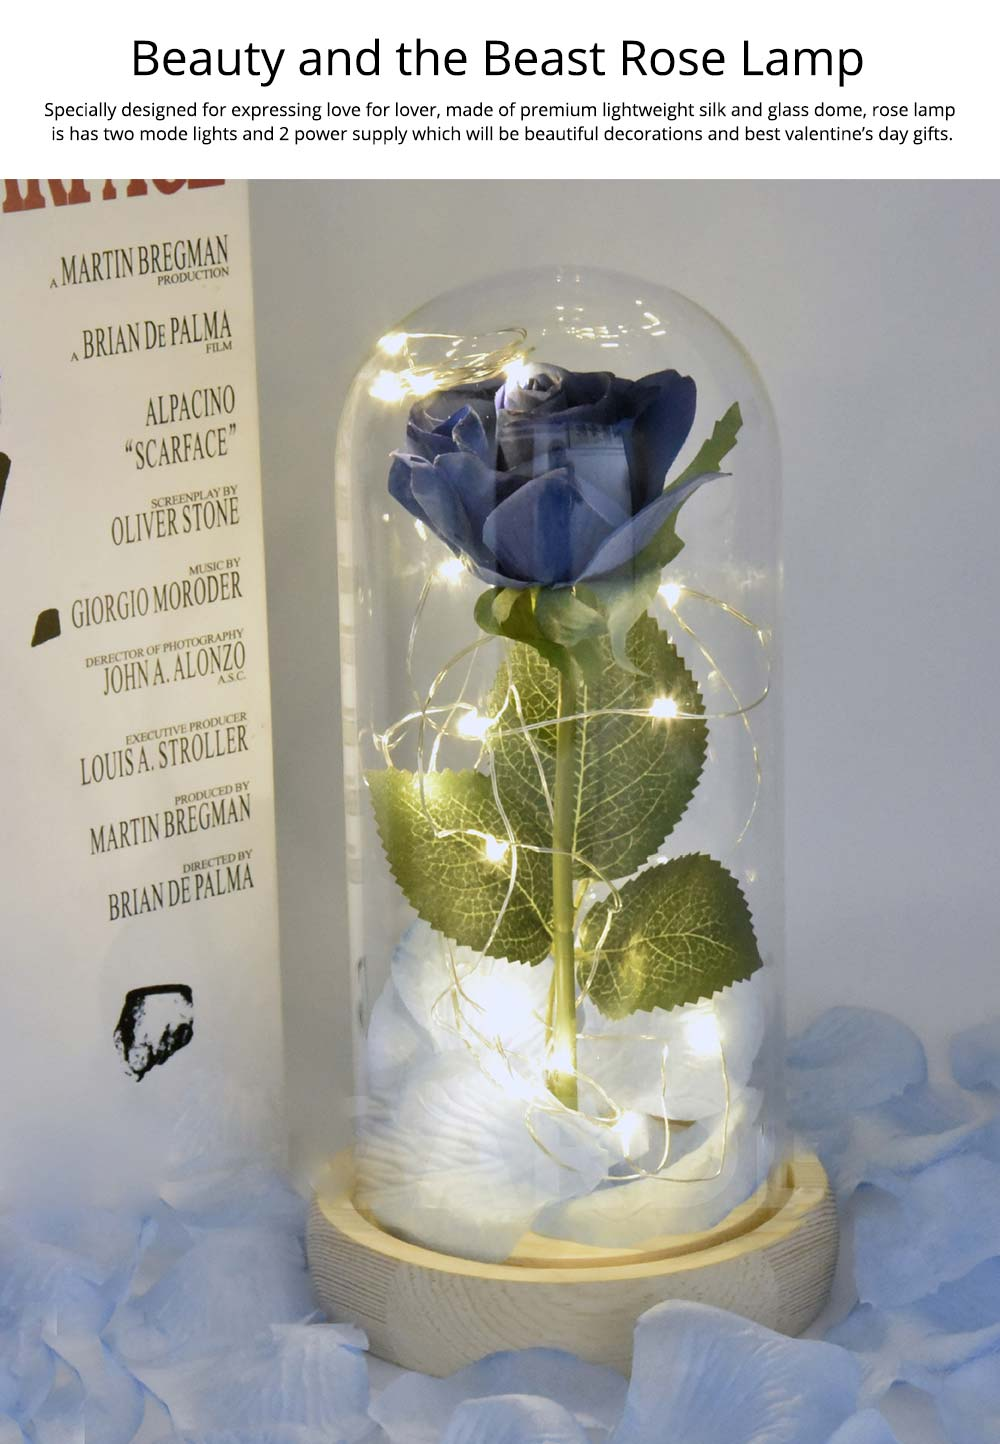 Blue Roses Lamp with LED Fairy String Lights, Fallen Petals and ABS Base in A Glass Dome, Valentine's Day Best Gift for Her 7